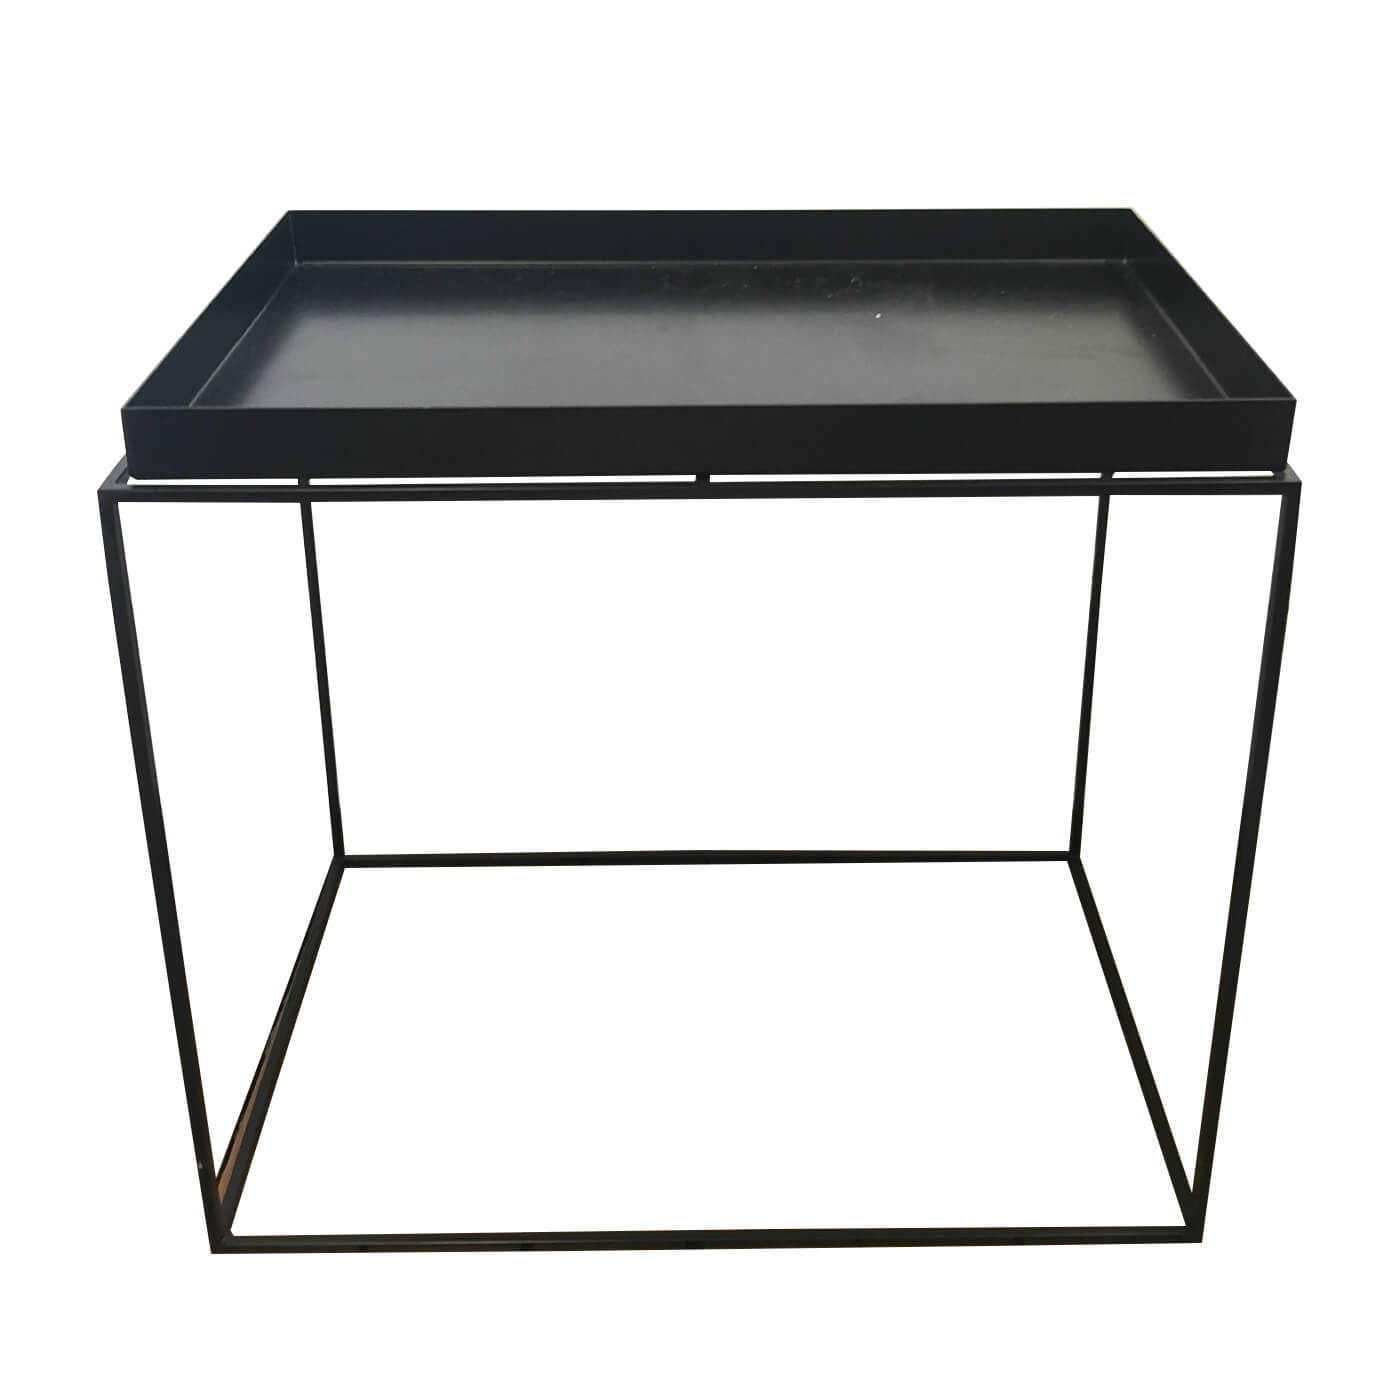 Hay tray side table black